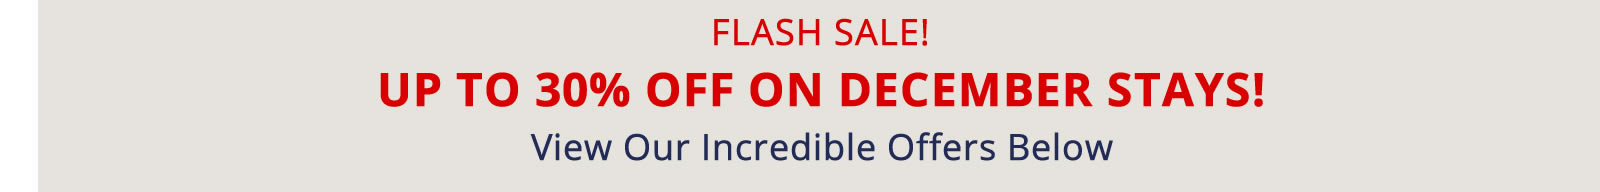 FLASH SALE! UP TO 30% OFF ON DECEMBER STAYS!